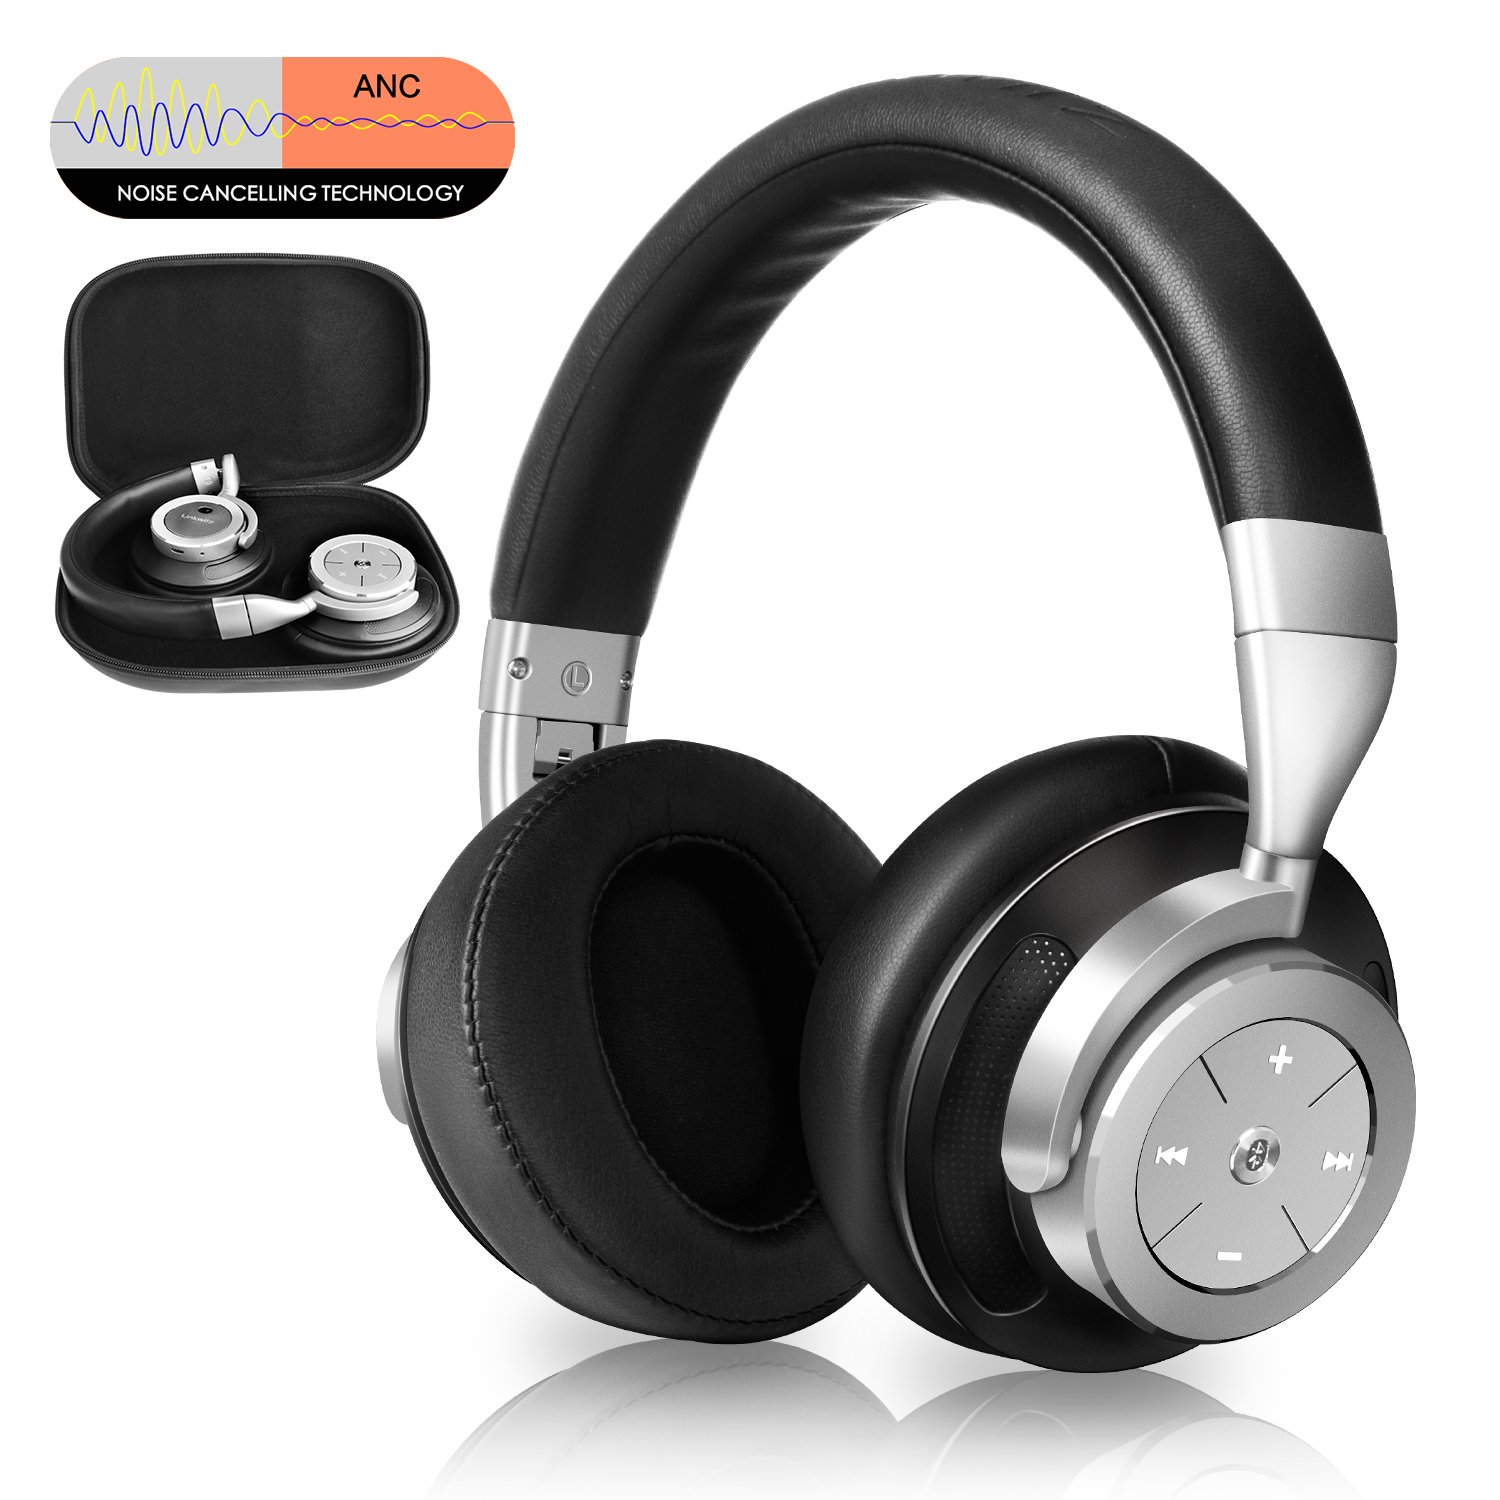 Noise Cancelling Bluetooth Headphones - Hi-Fi Stereo Deep Bass Over Ear Wireless Headphones with Mic and Portable Carrying Case for Travel Work TV/PC/Cell Phones, Steel Silver by Linkwitz